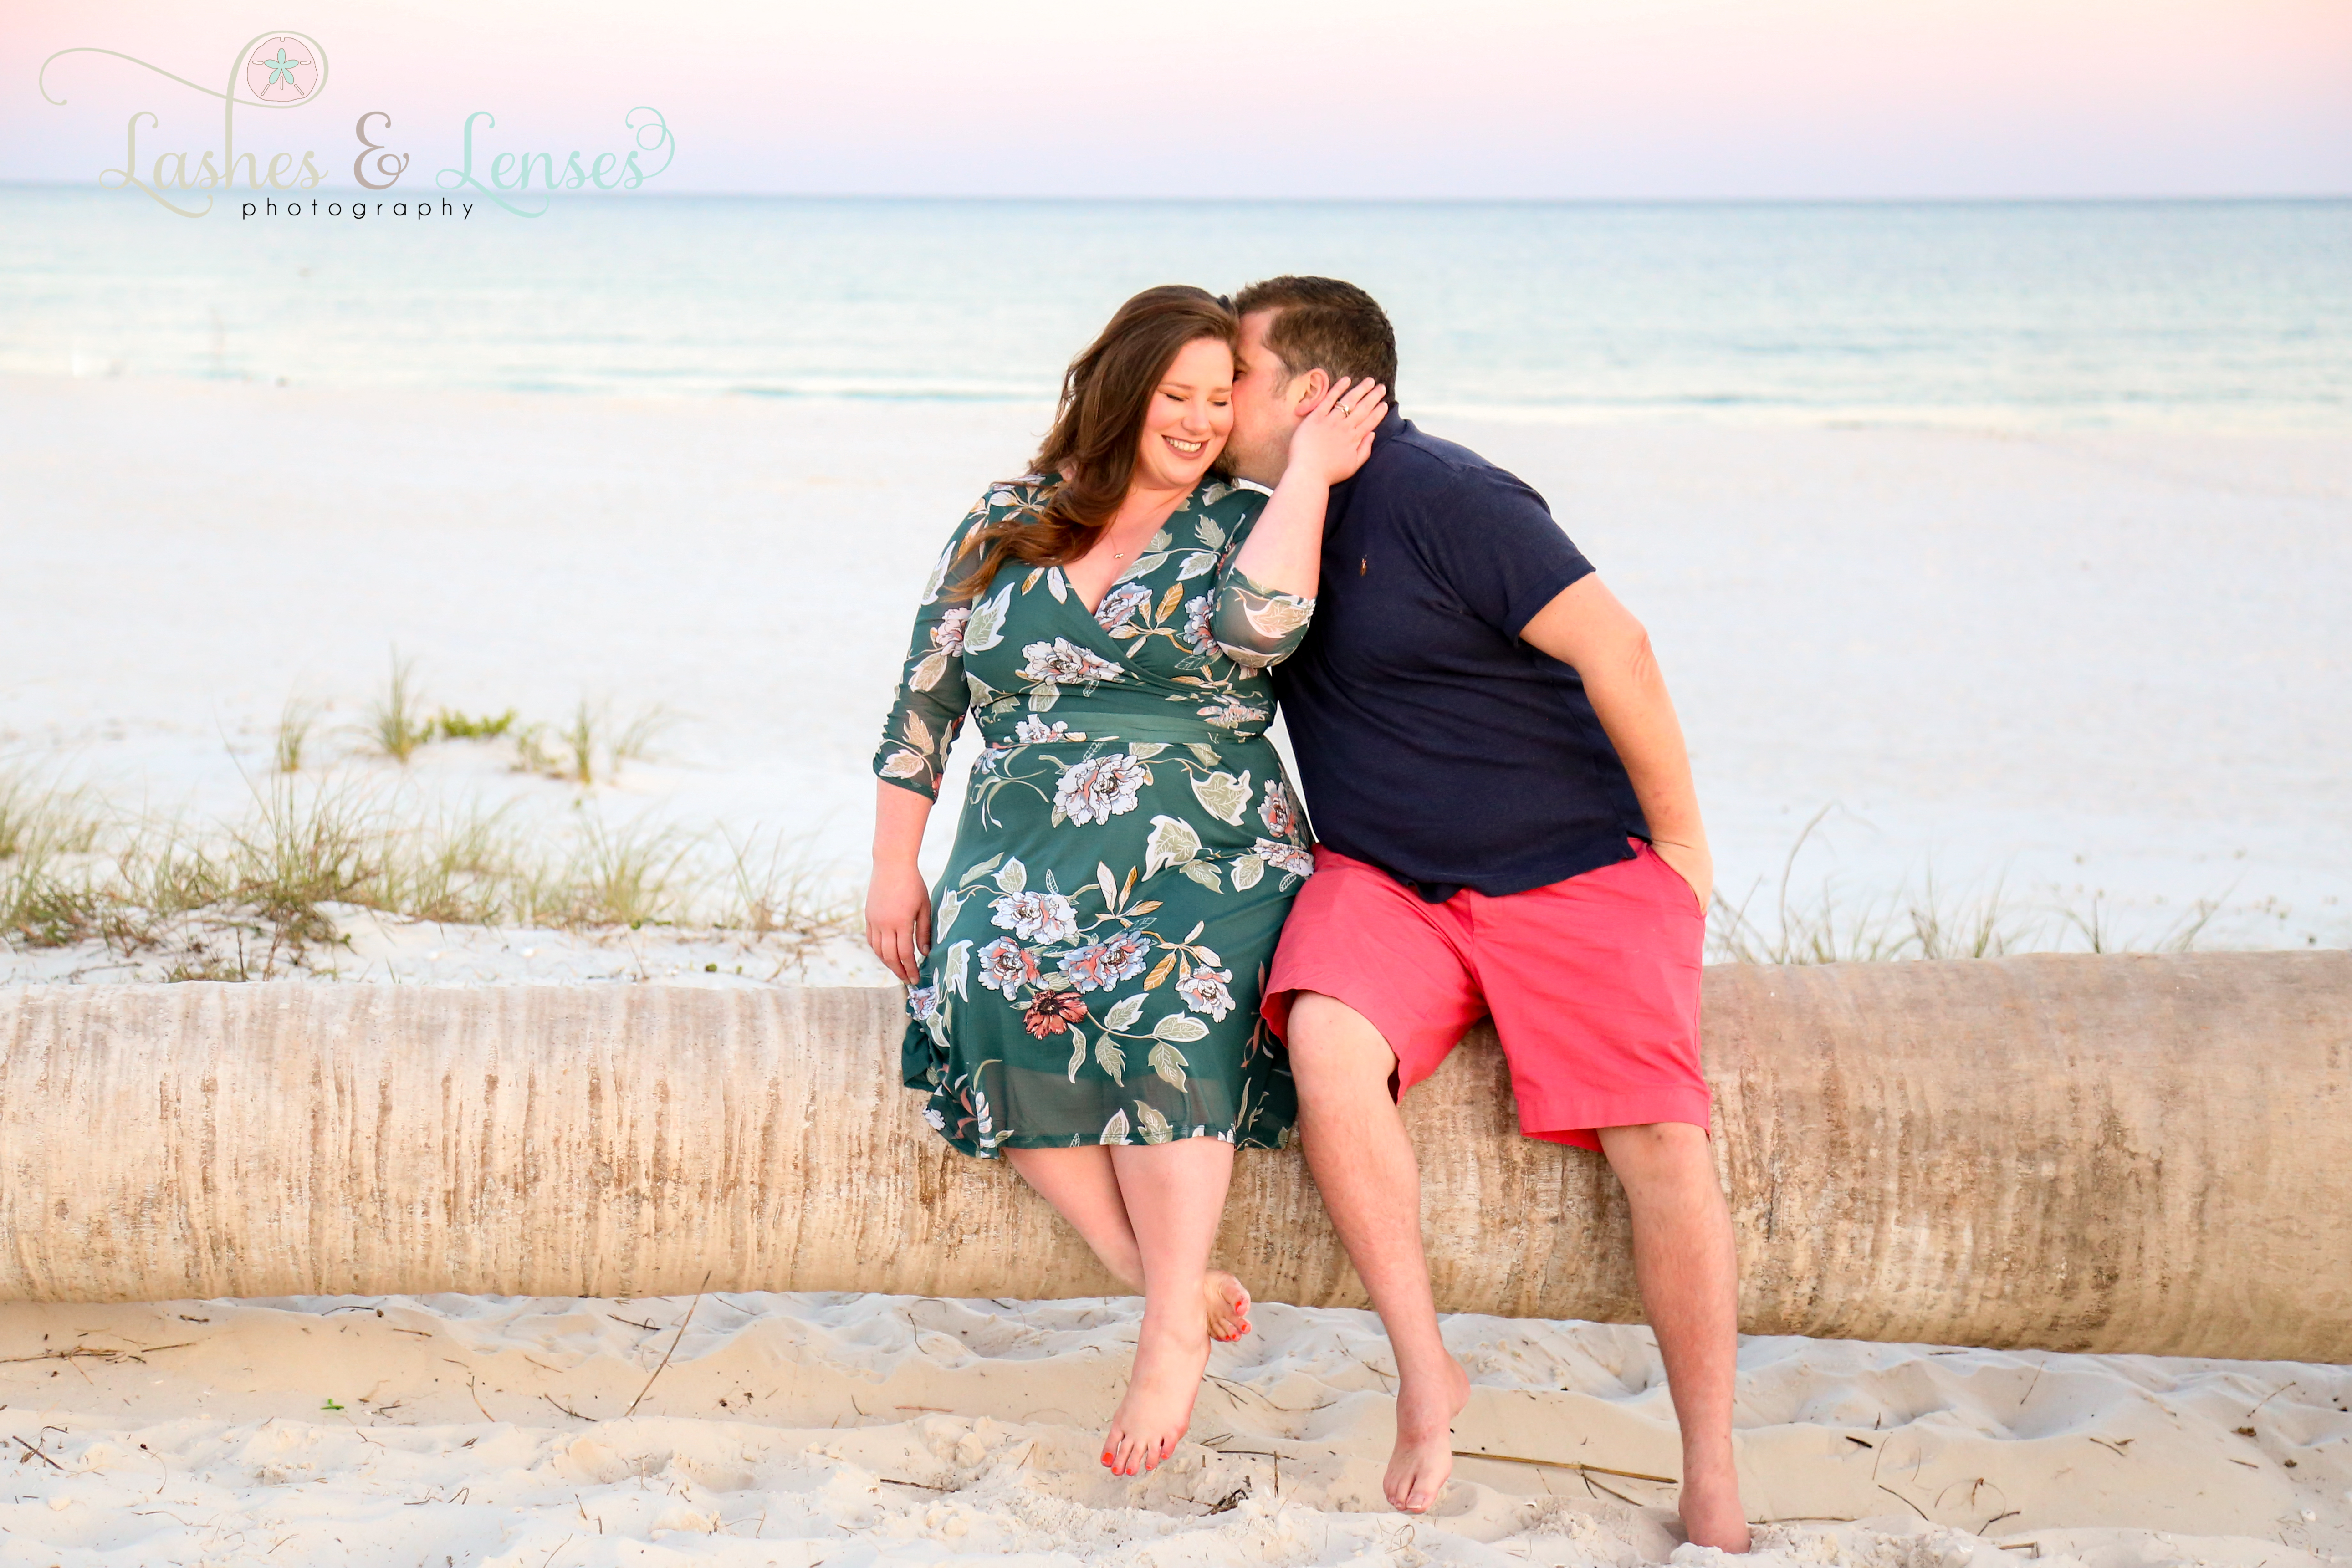 Husband kissing wife on cheek while sitting on washed up palm tree on the beach at Johnsons Beach in Perdido Key